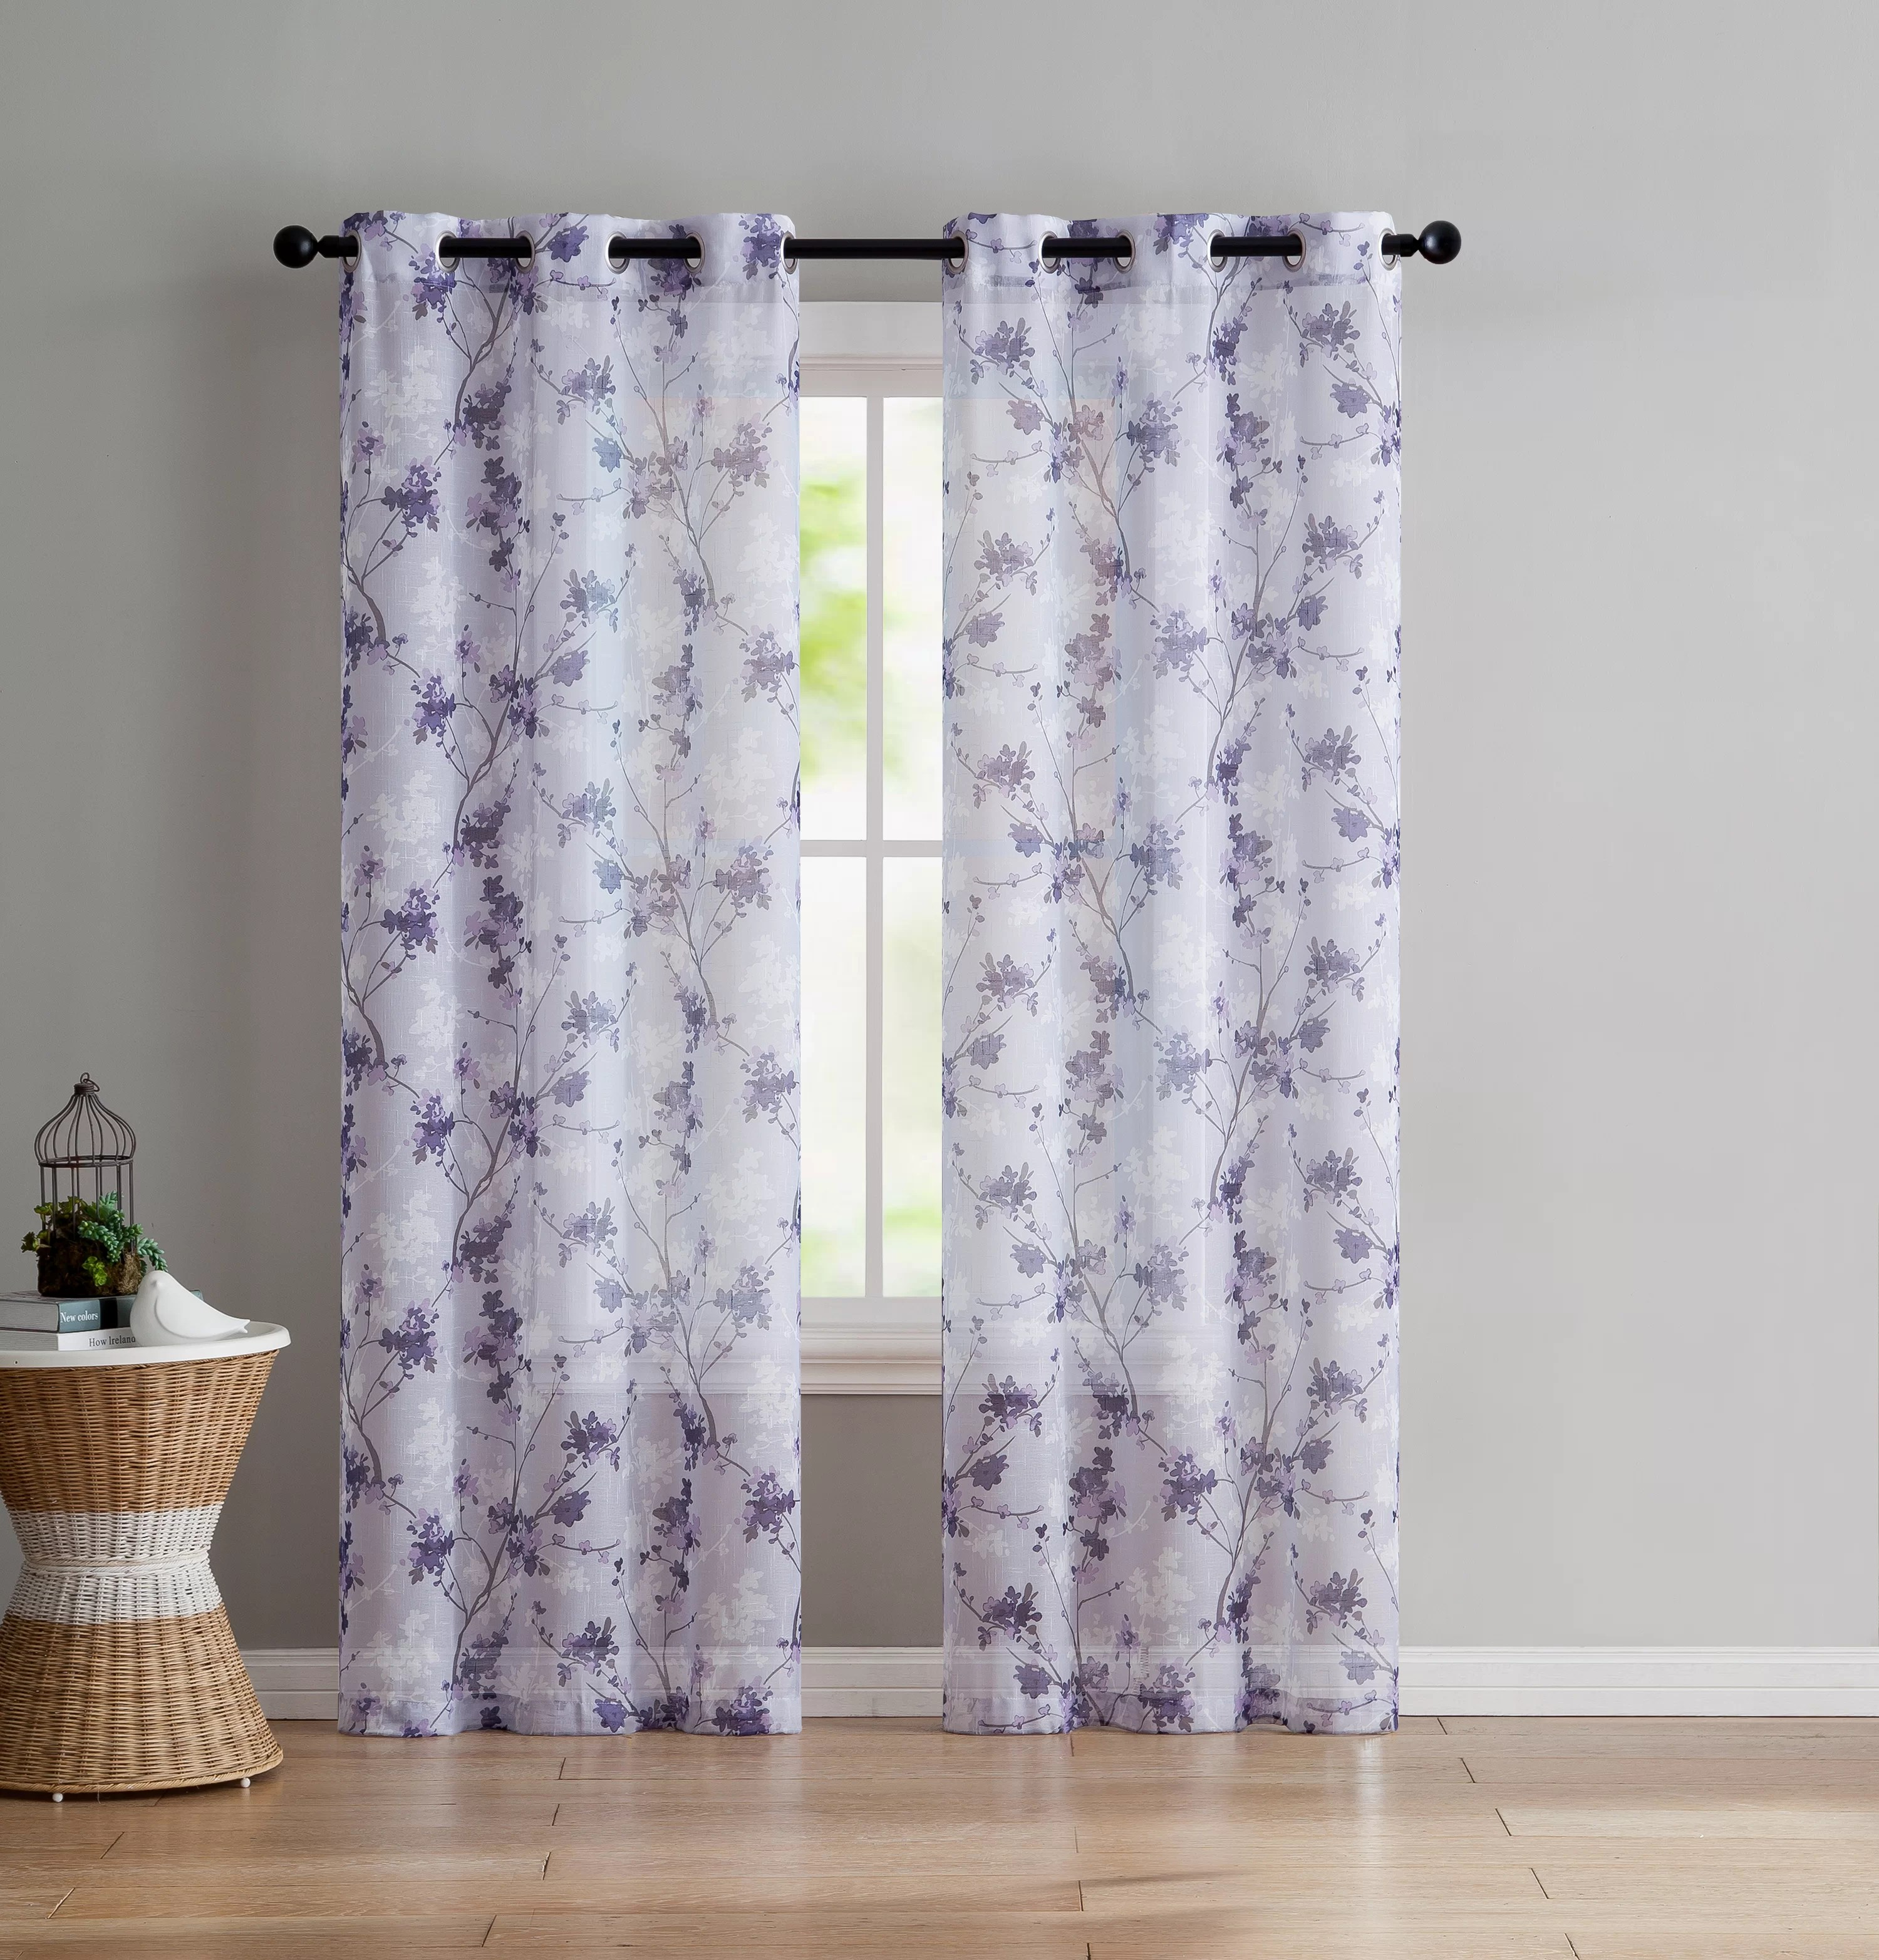 Lavender Sheer Curtains Severus Nature Floral Sheer Grommet Curtain Panels